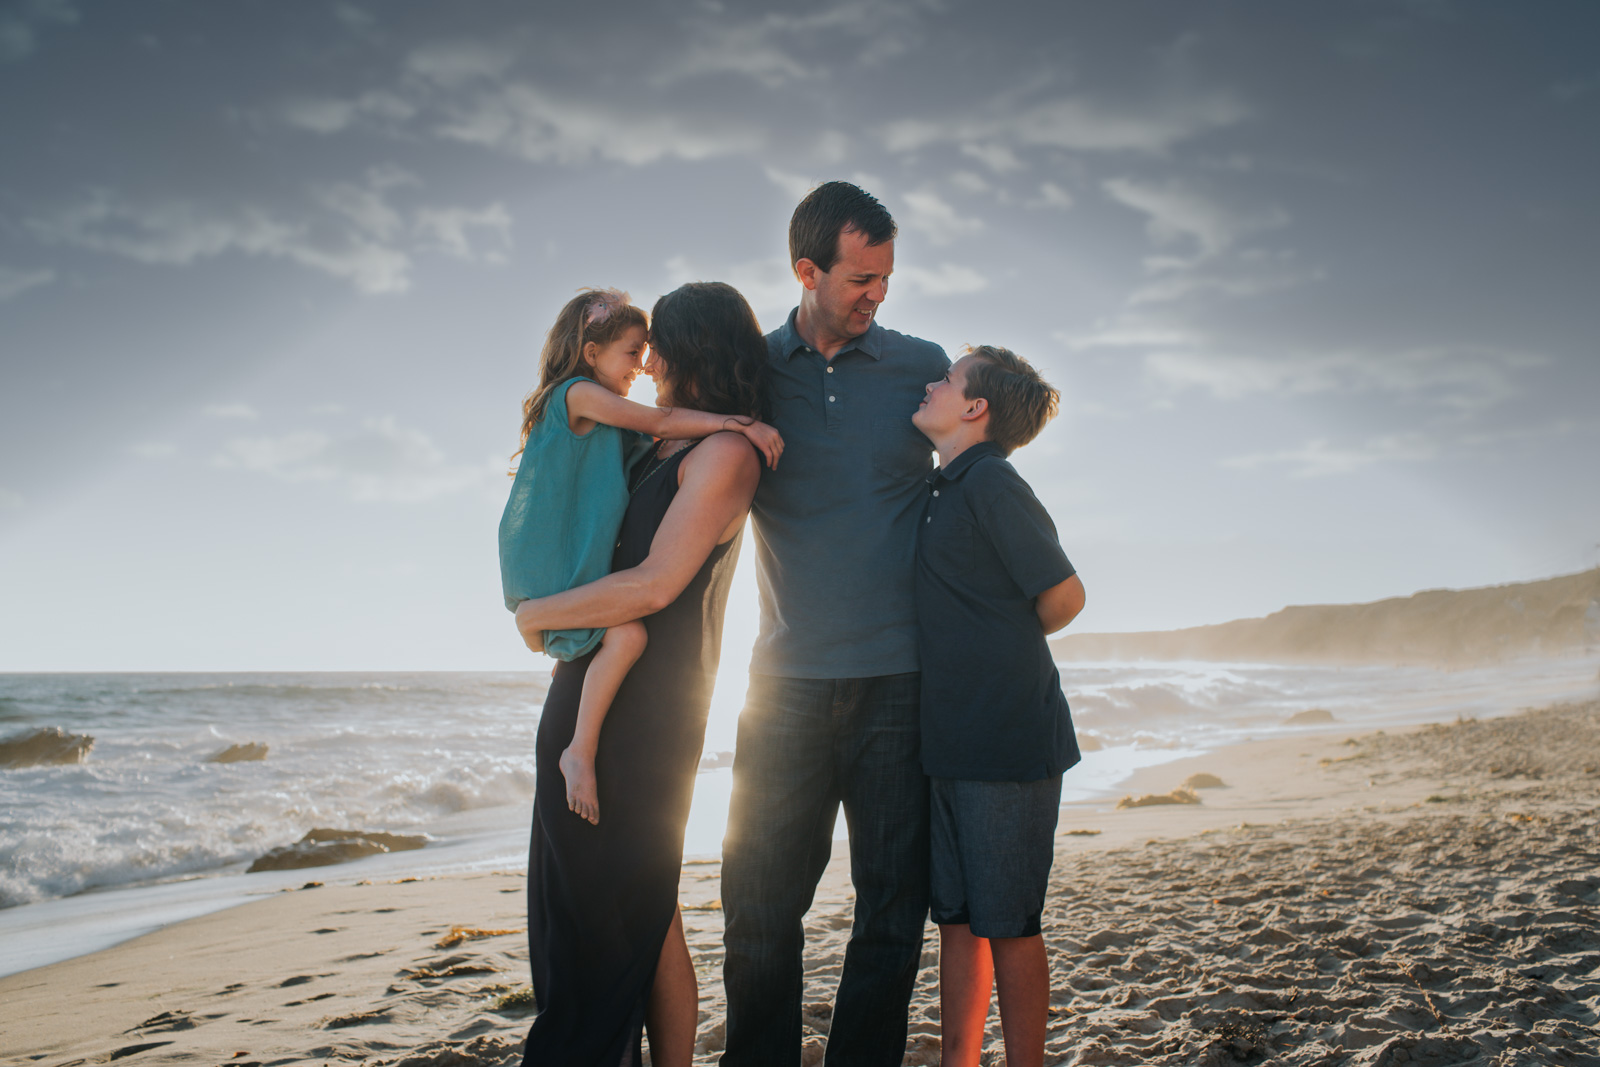 A family of four at sunset - How to photograph children with special needs